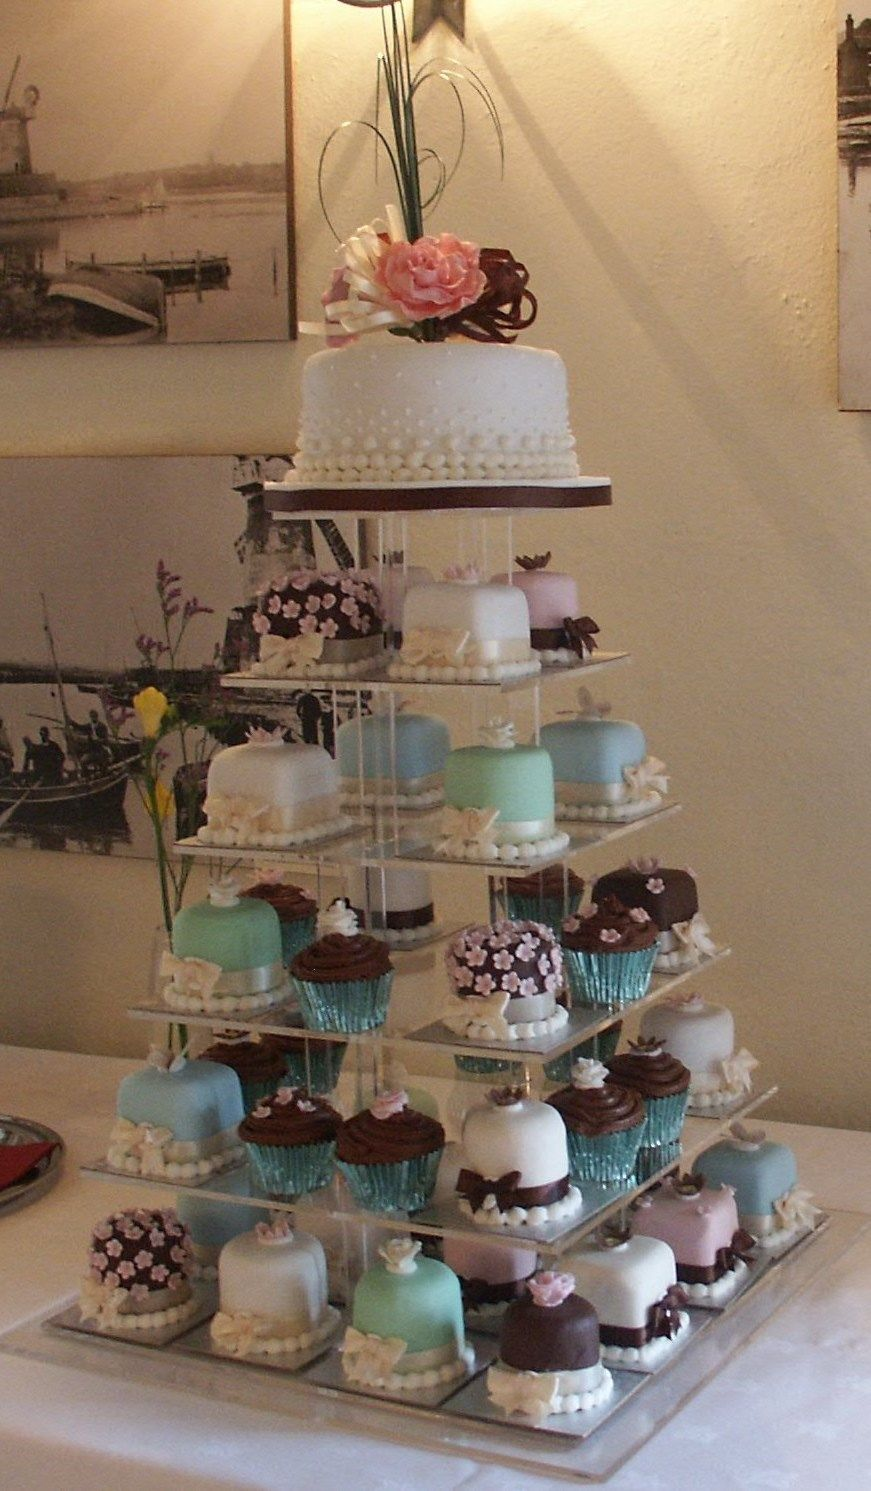 Mini Sponge Wedding Cakes Chocolate Cup And A Top Rich Fruit Cake For